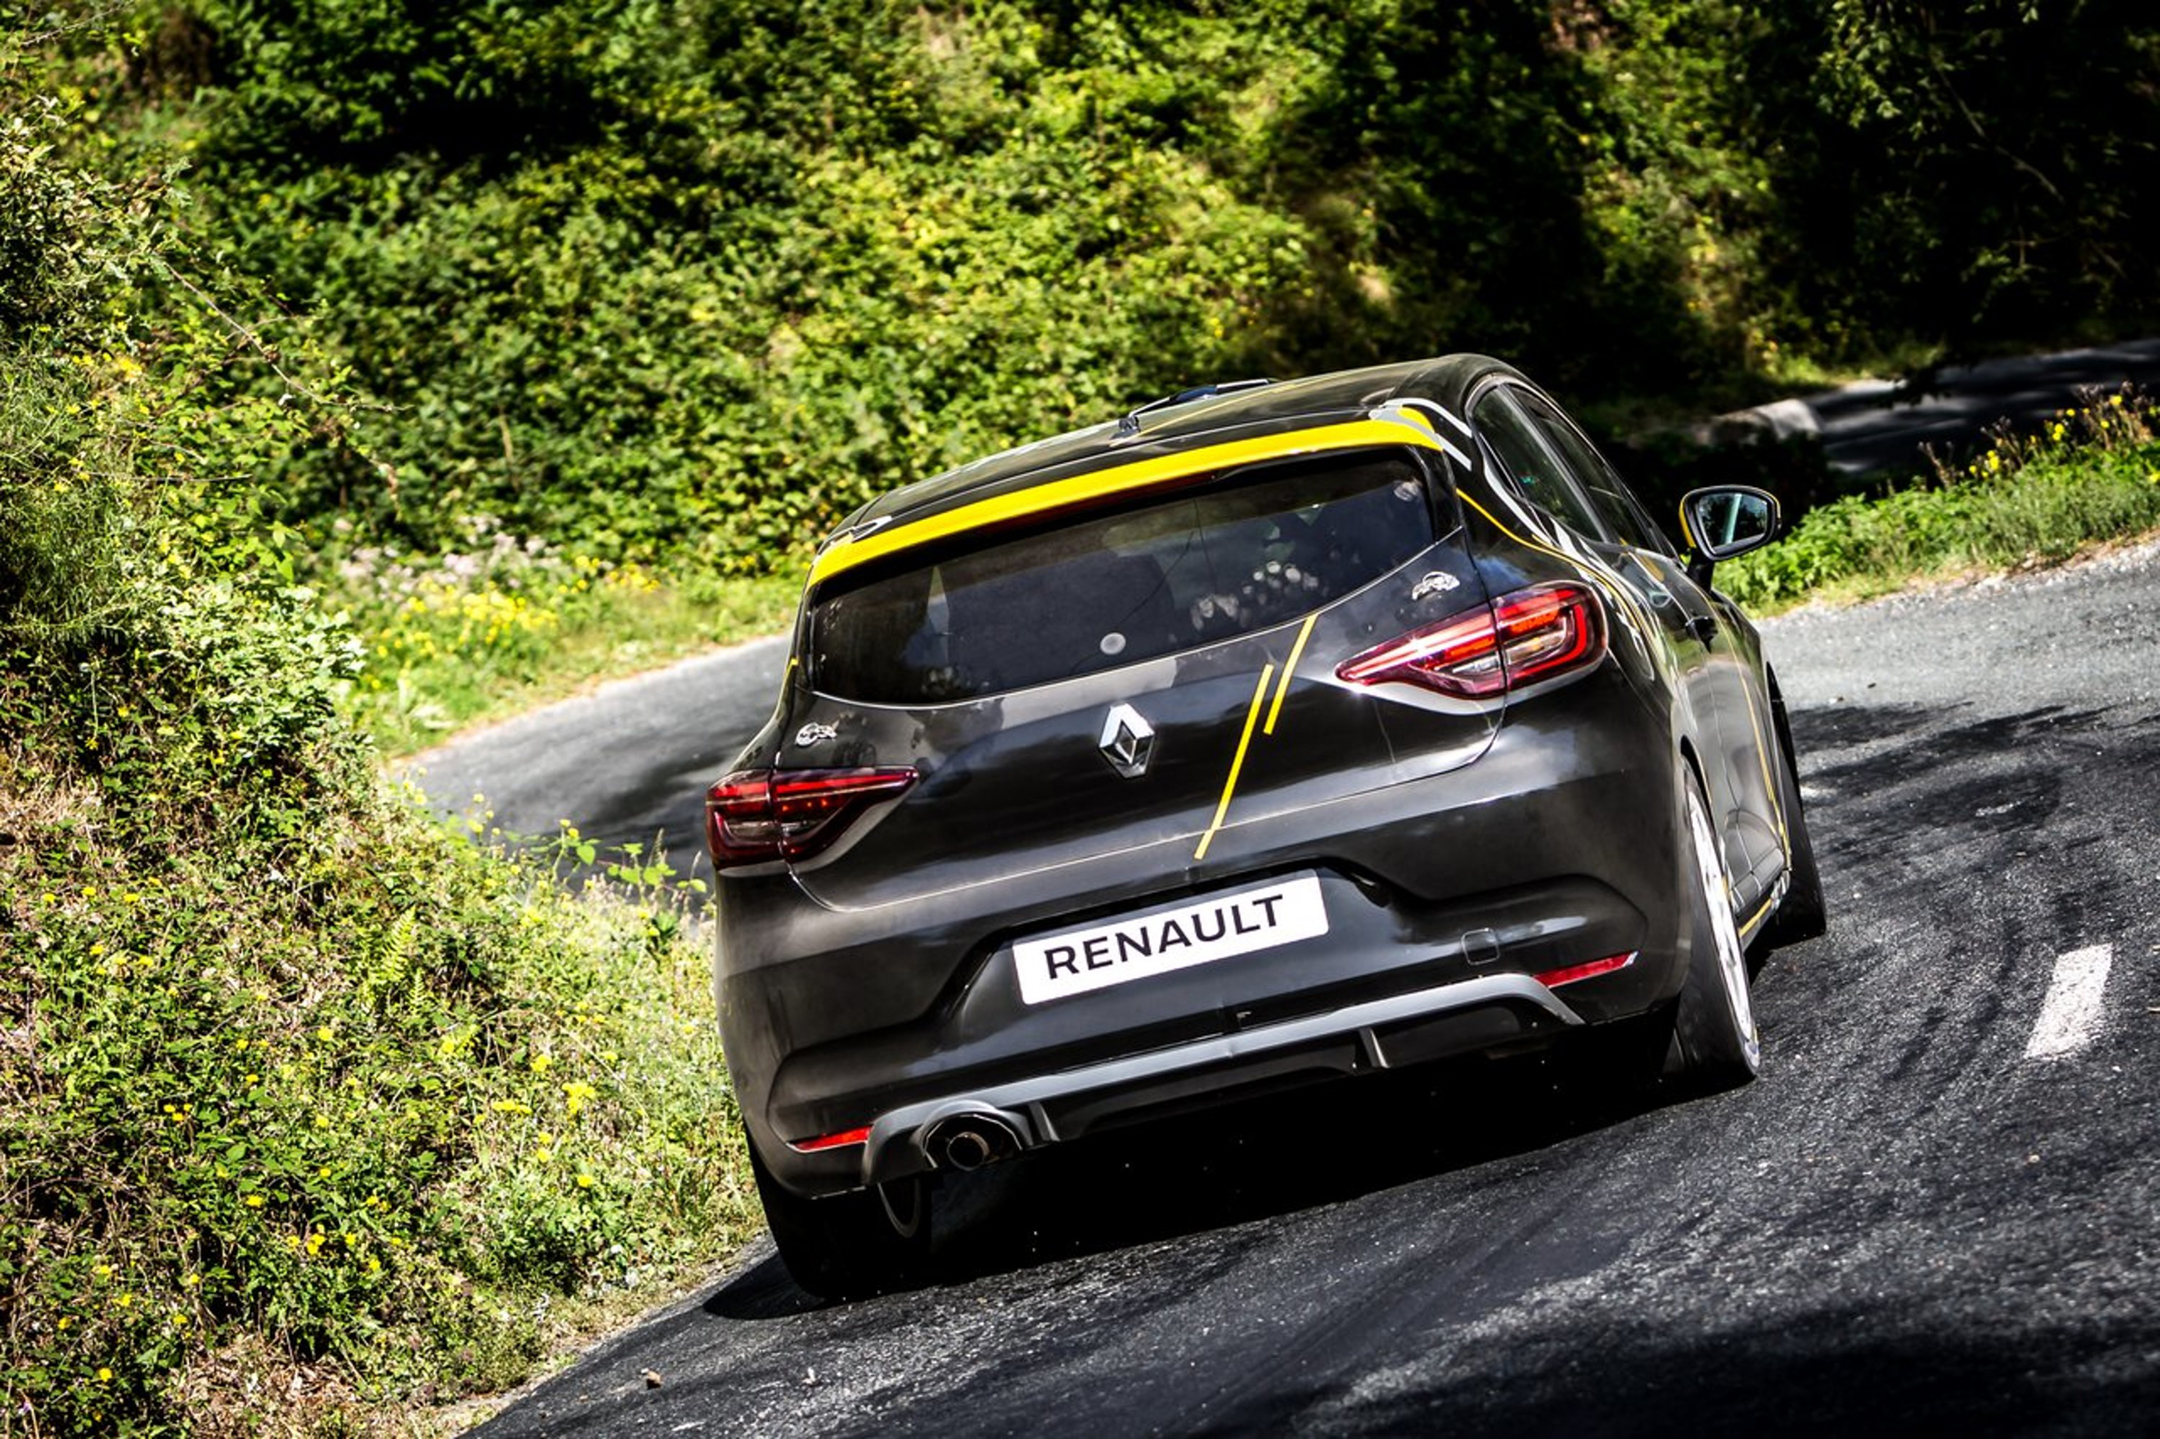 Renault Clio Rally - 2020 - rear / arrière - on road / sur route